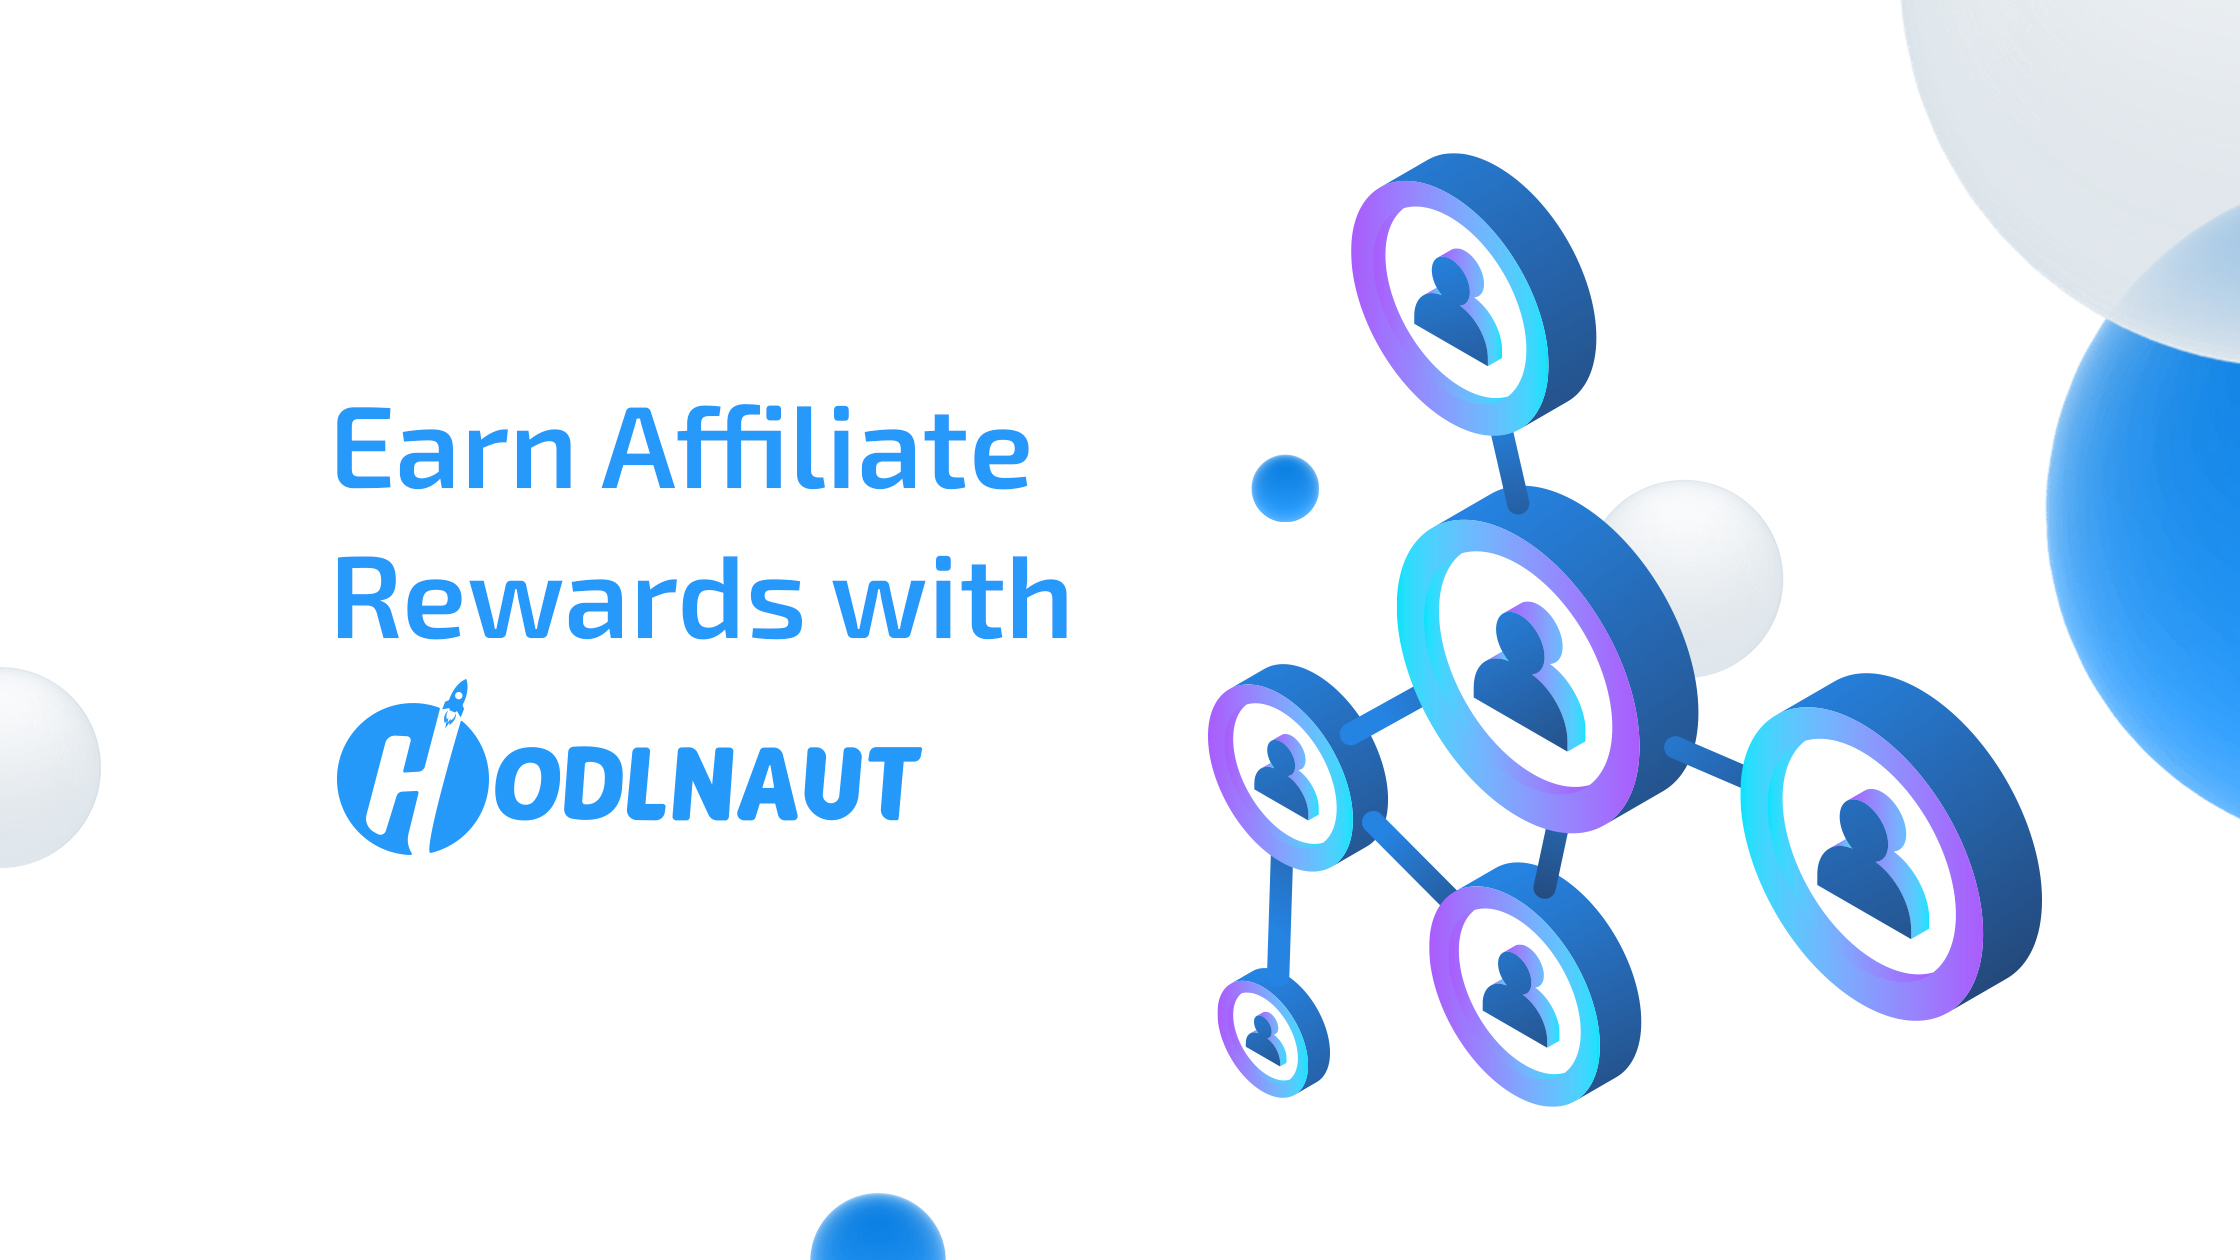 Earn 10% Commission with Hodlnaut's Affiliate Program